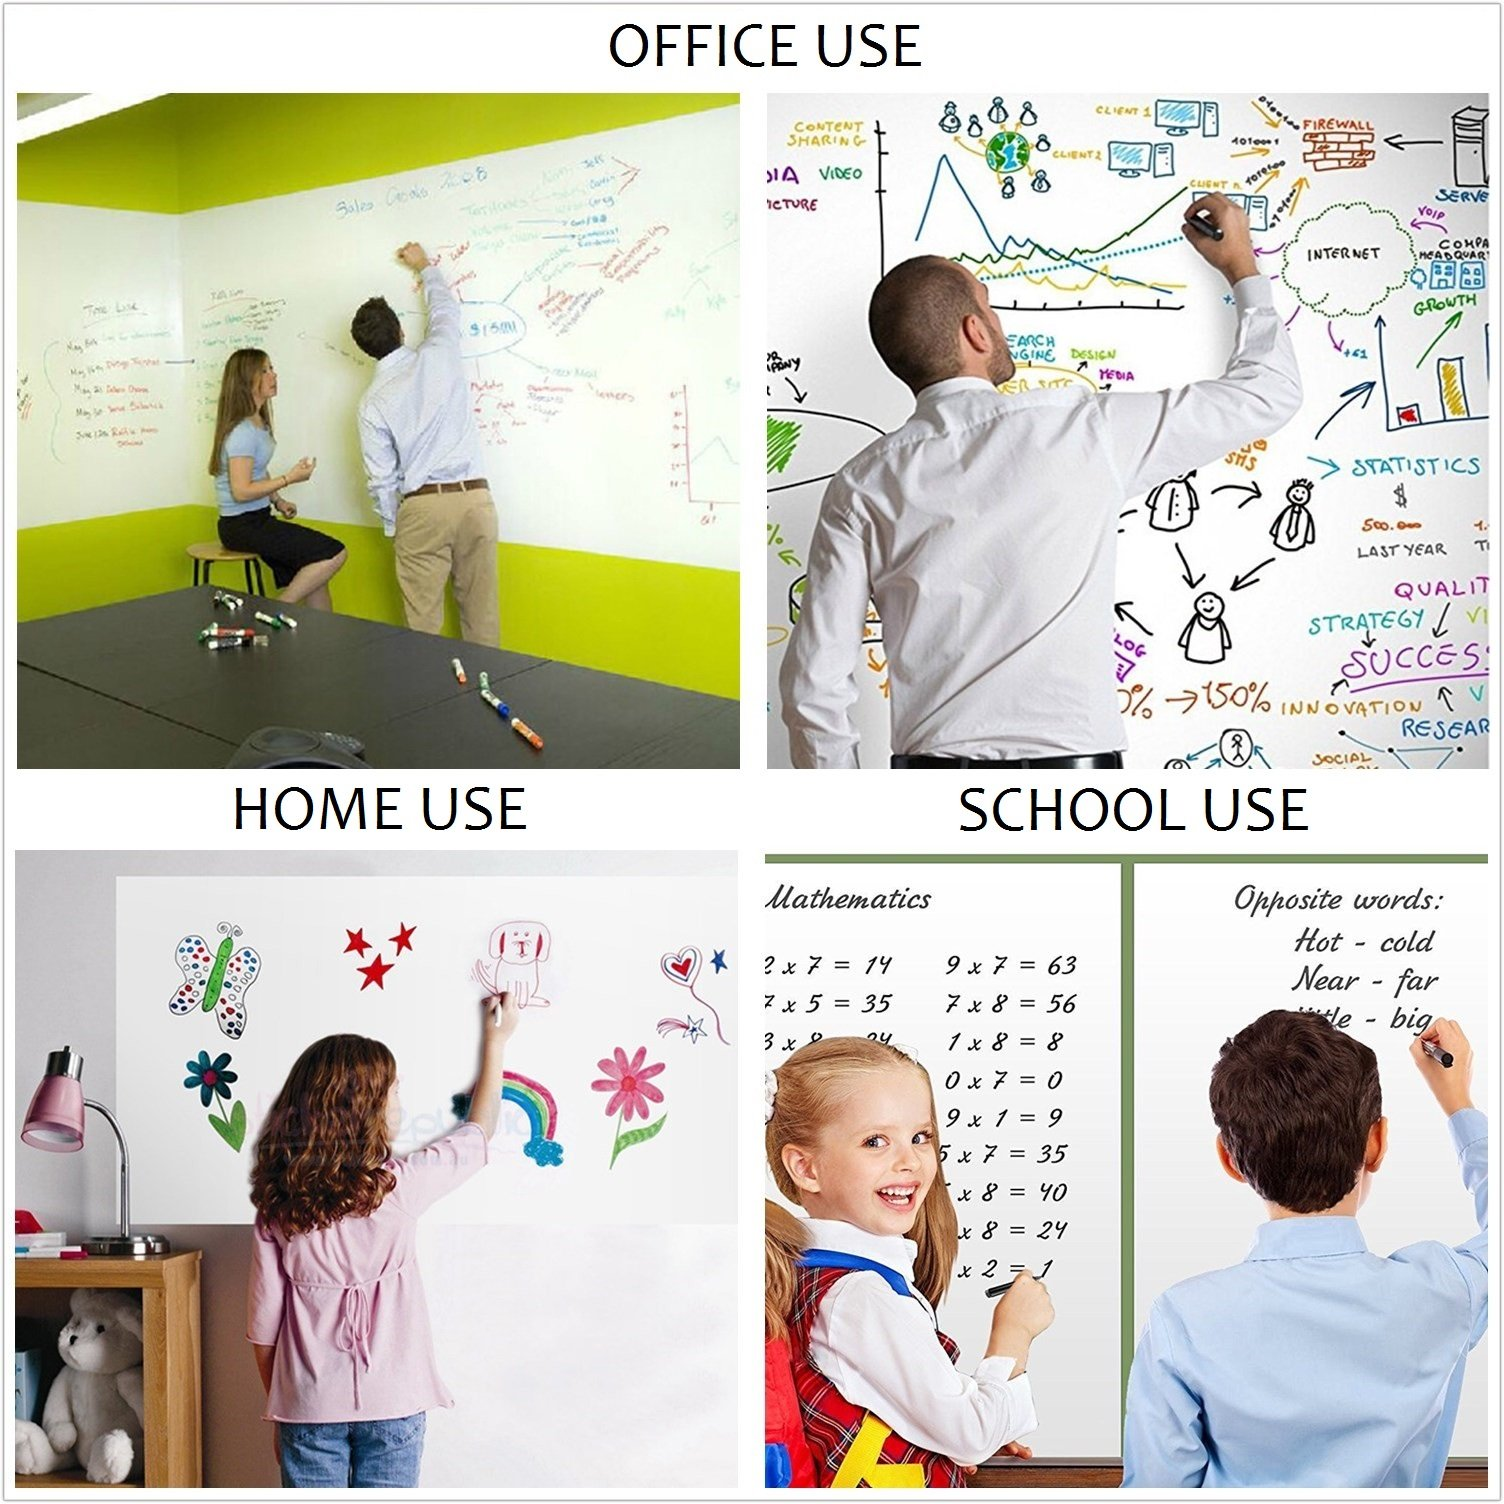 Dry Erase Wall Decal, UnityStar Whiteboard Sticker Extra Large Contact Paper with 3 Water-Based Pens for Home Office School Restaurant Menu, 17.7'' X 78.7'', White by UnityStar (Image #6)